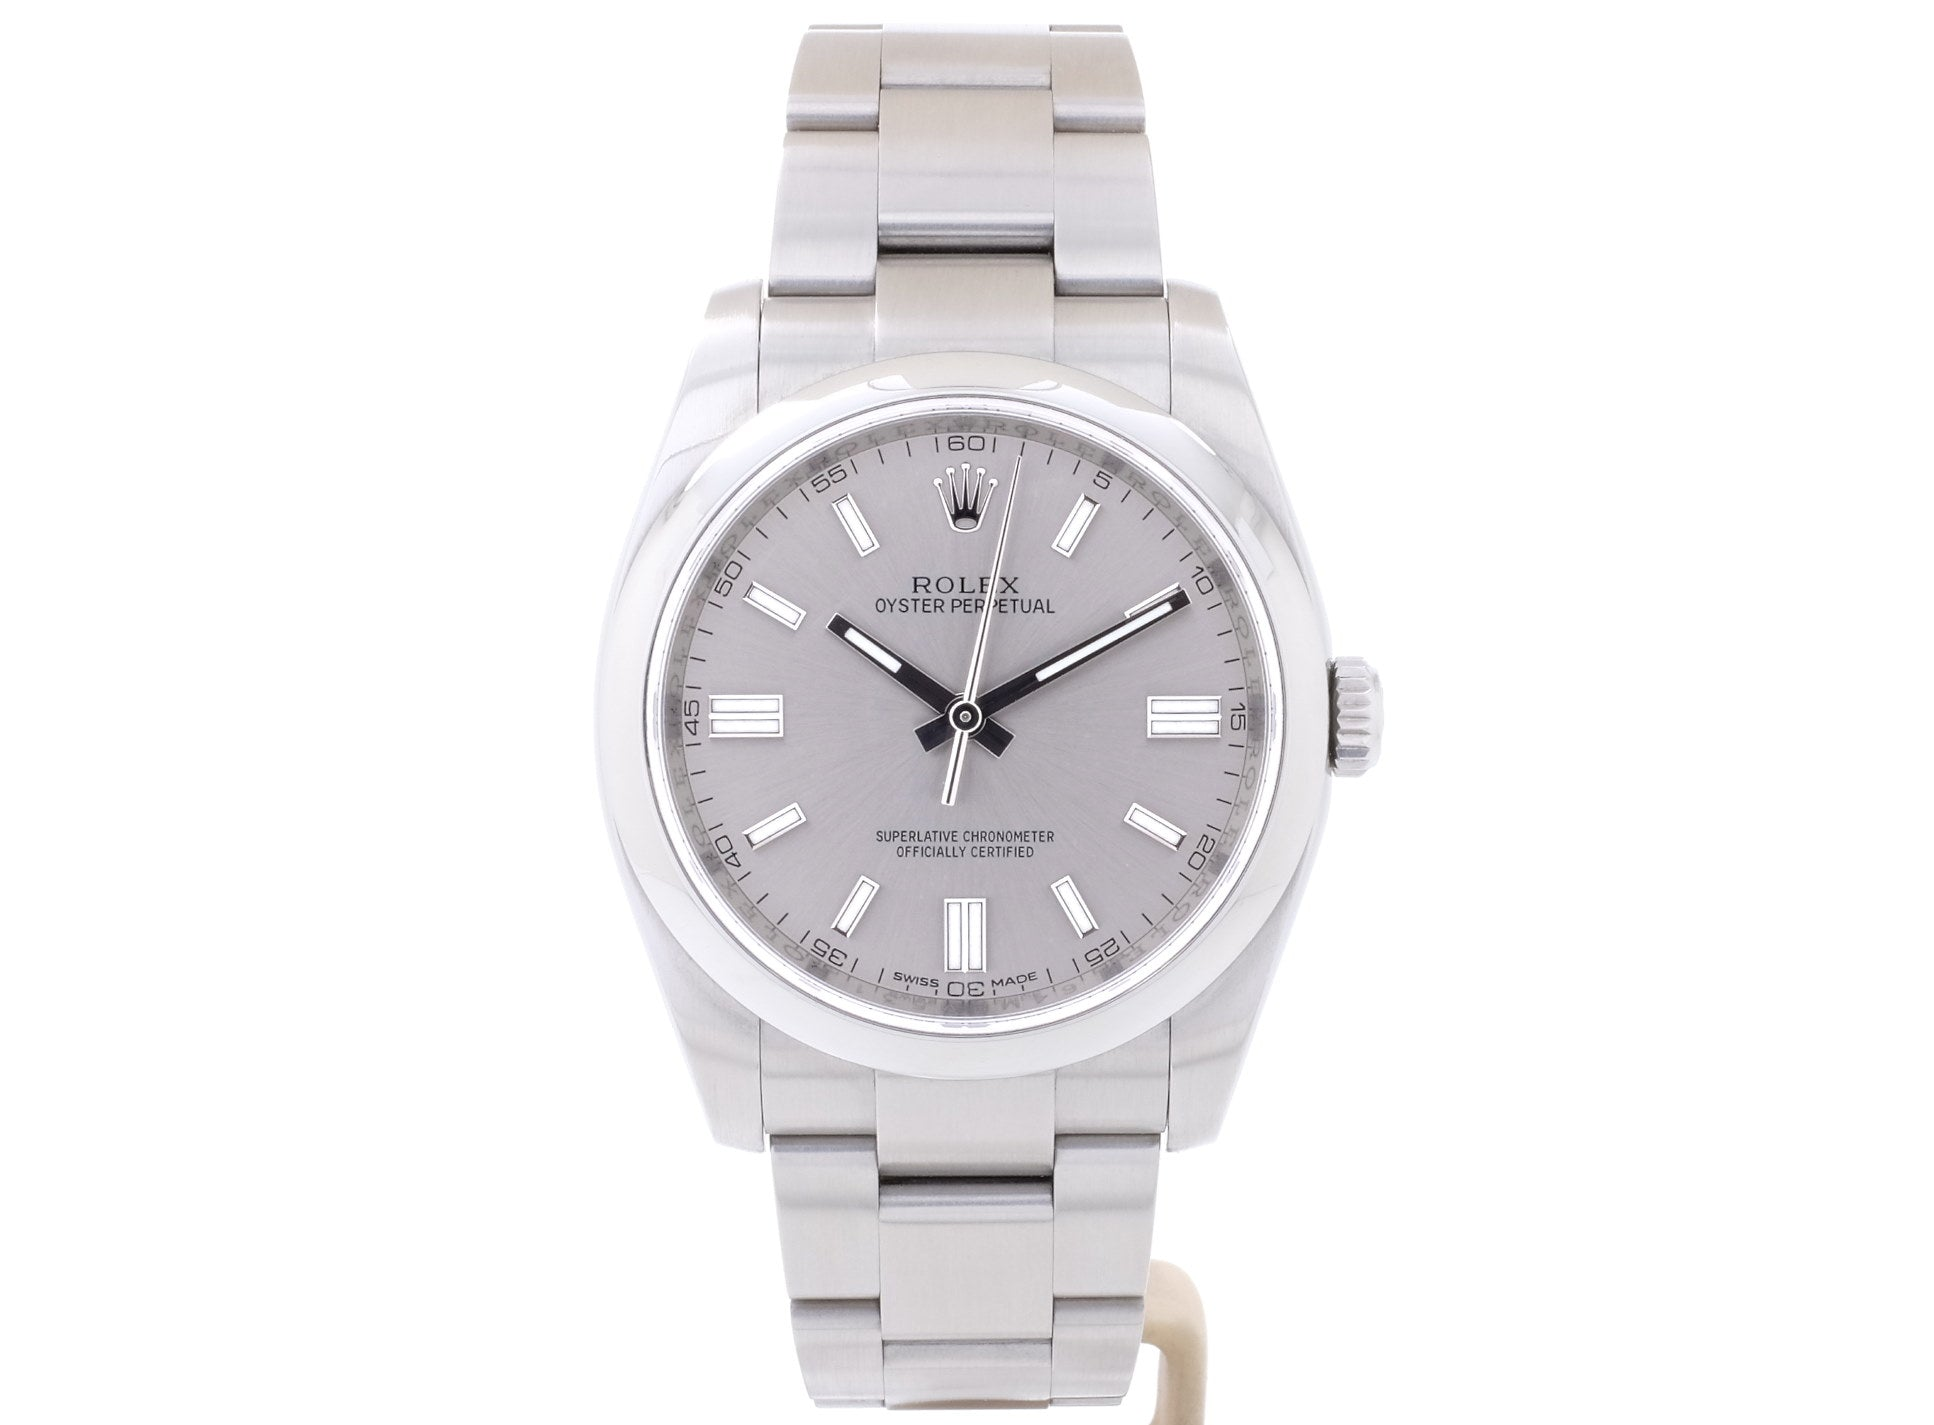 2015 36mm Rolex OYSTER PERPETUAL 36 Model 116000 with Grey Dial